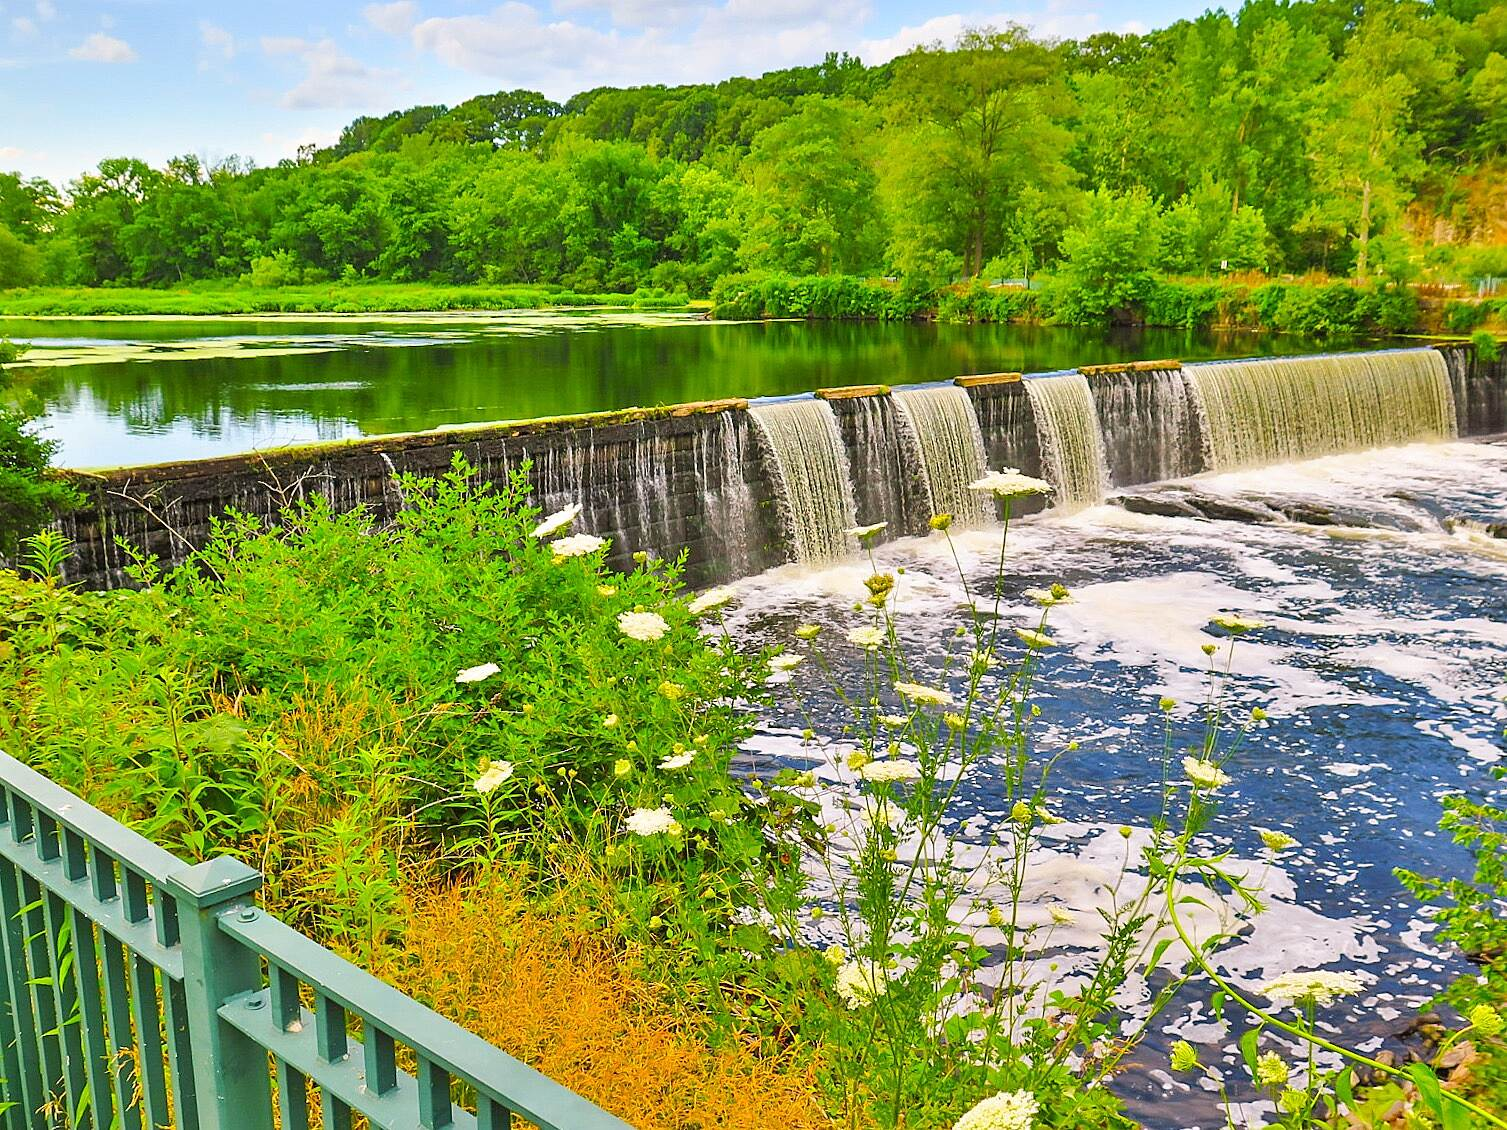 Blackstone River Greenway (RI) Waterfall Scenic View July 2, 2016, a Beautiful View on The Blackstone River Greenway !!